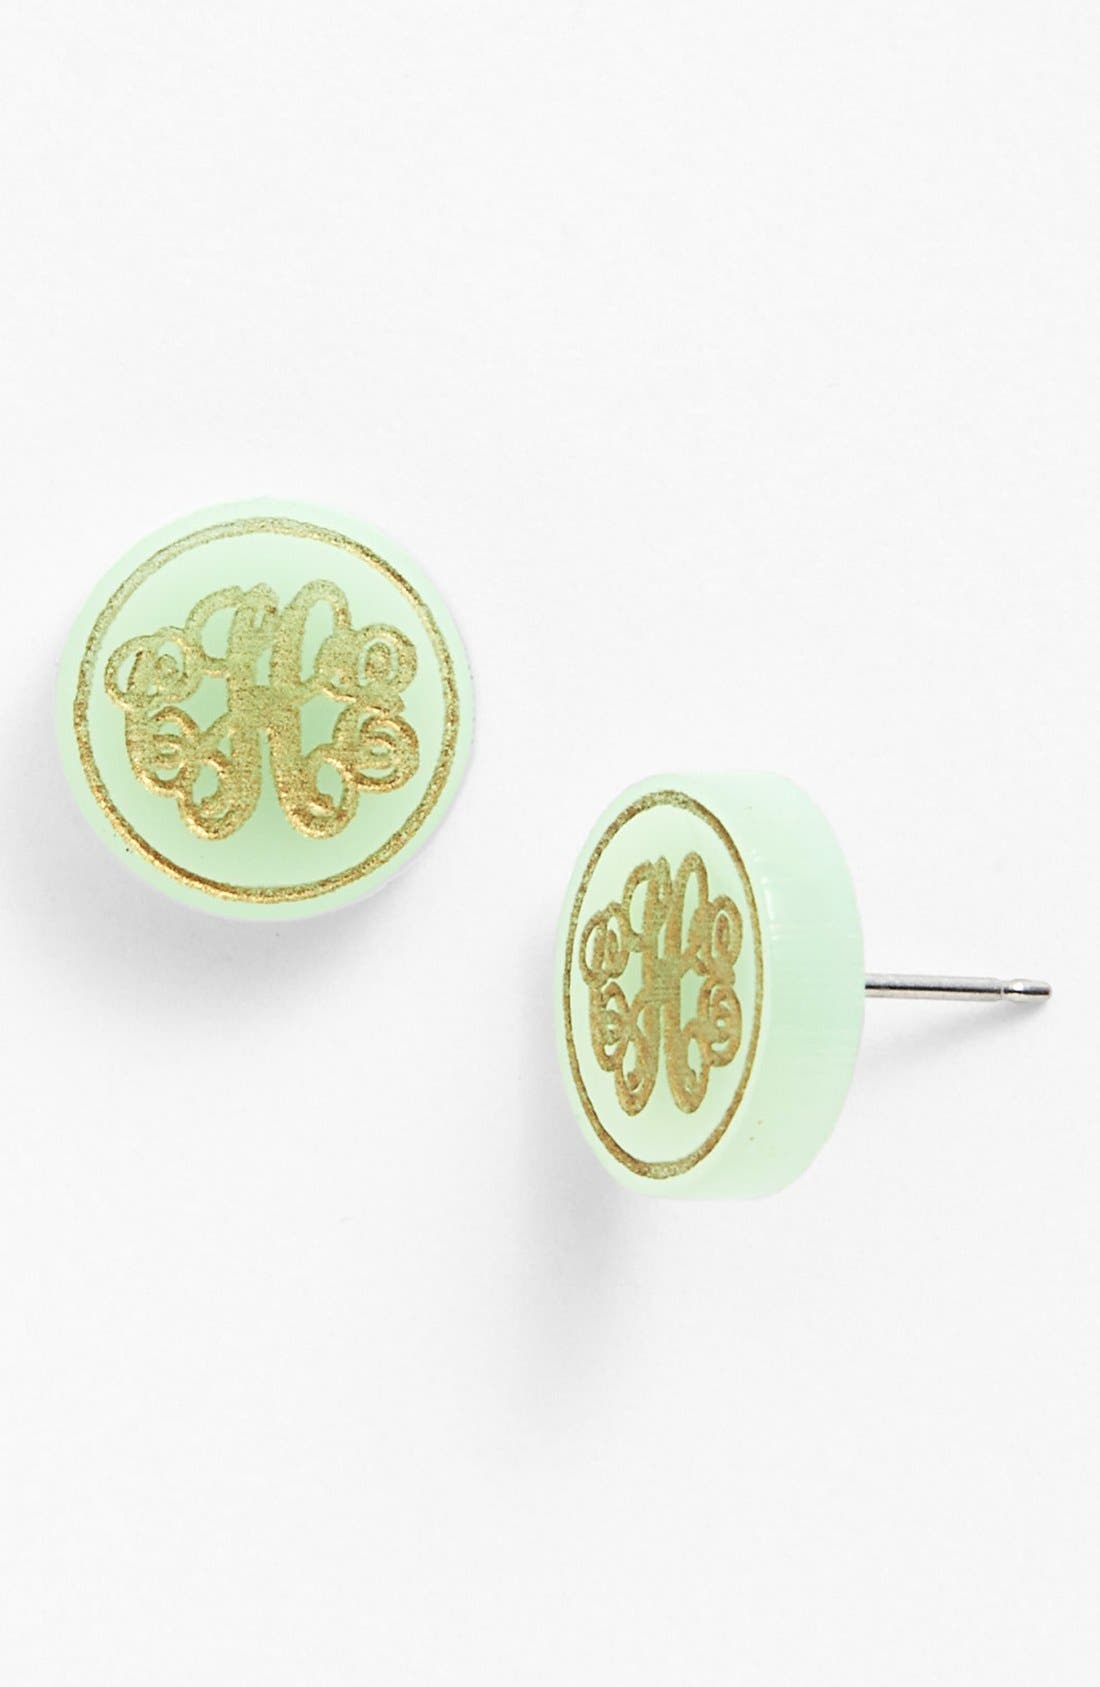 MOON AND LOLA, 'Chelsea' Small Personalized Monogram Stud Earrings, Main thumbnail 1, color, MINT/ GOLD